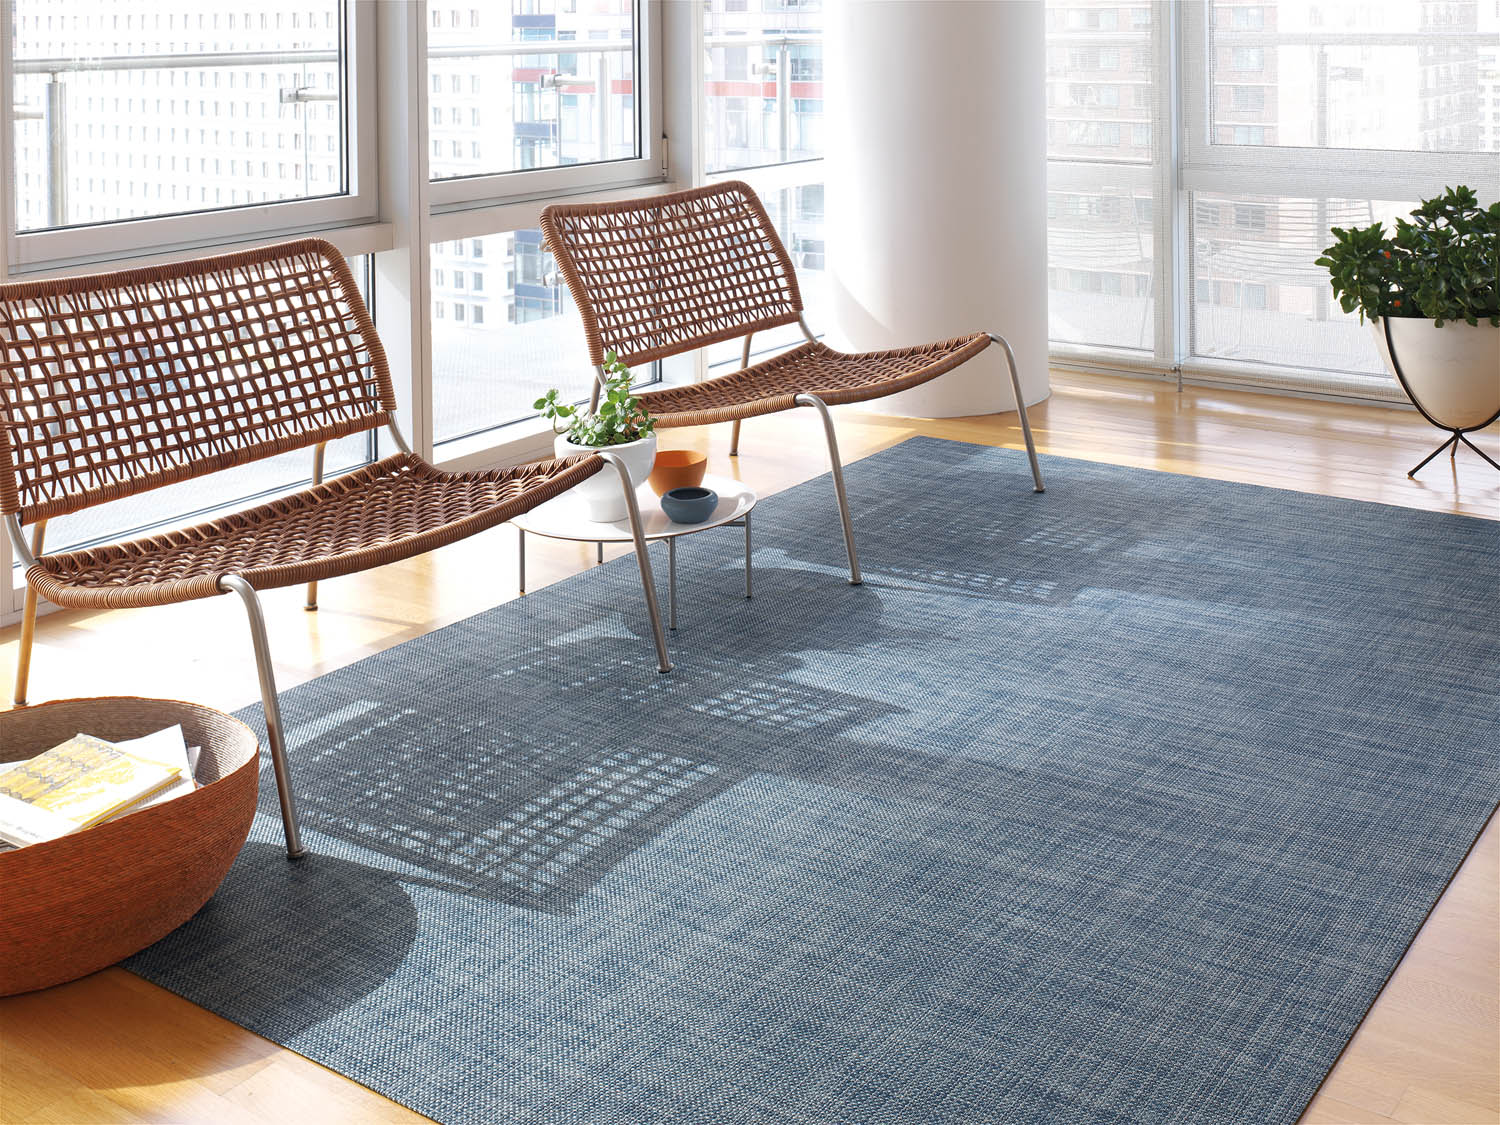 Chilewichs spring summer 2018 collection rue chilewich has launched a collection of indooroutdoor rugs the basketweave floor mat in denim is a great option to give that casual feel to a high traffic dailygadgetfo Images